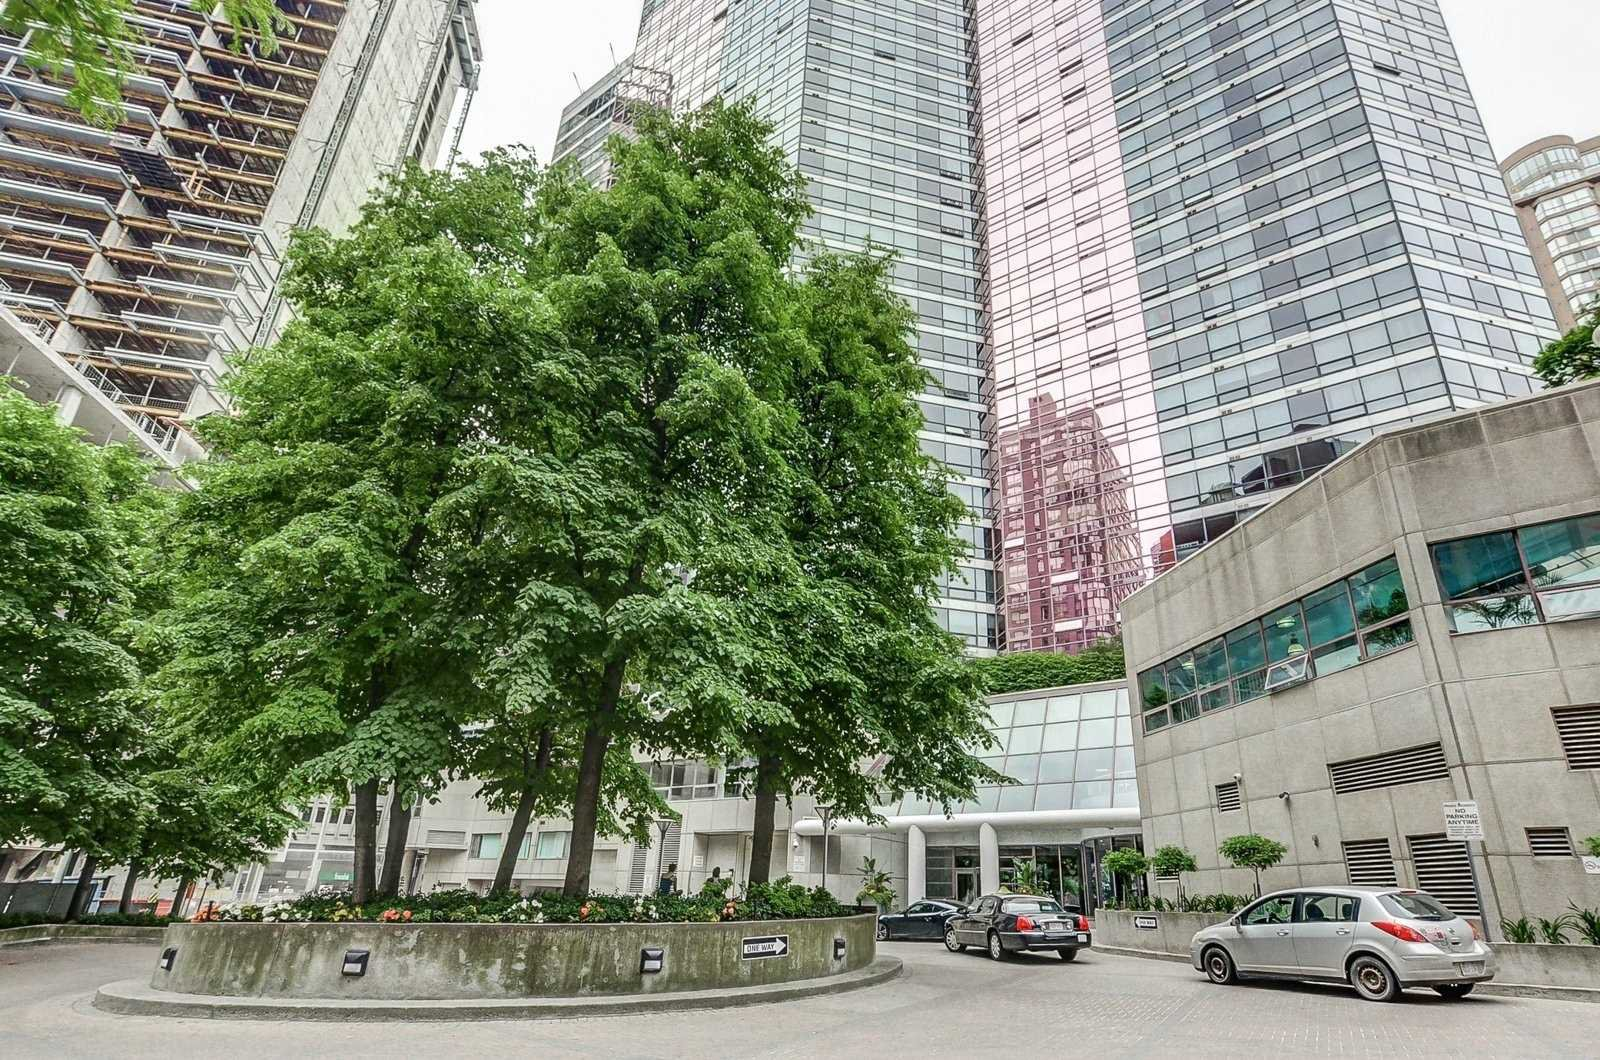 Main Photo: 3009 1001 Bay Street in Toronto: Bay Street Corridor Condo for lease (Toronto C01)  : MLS®# C4499138